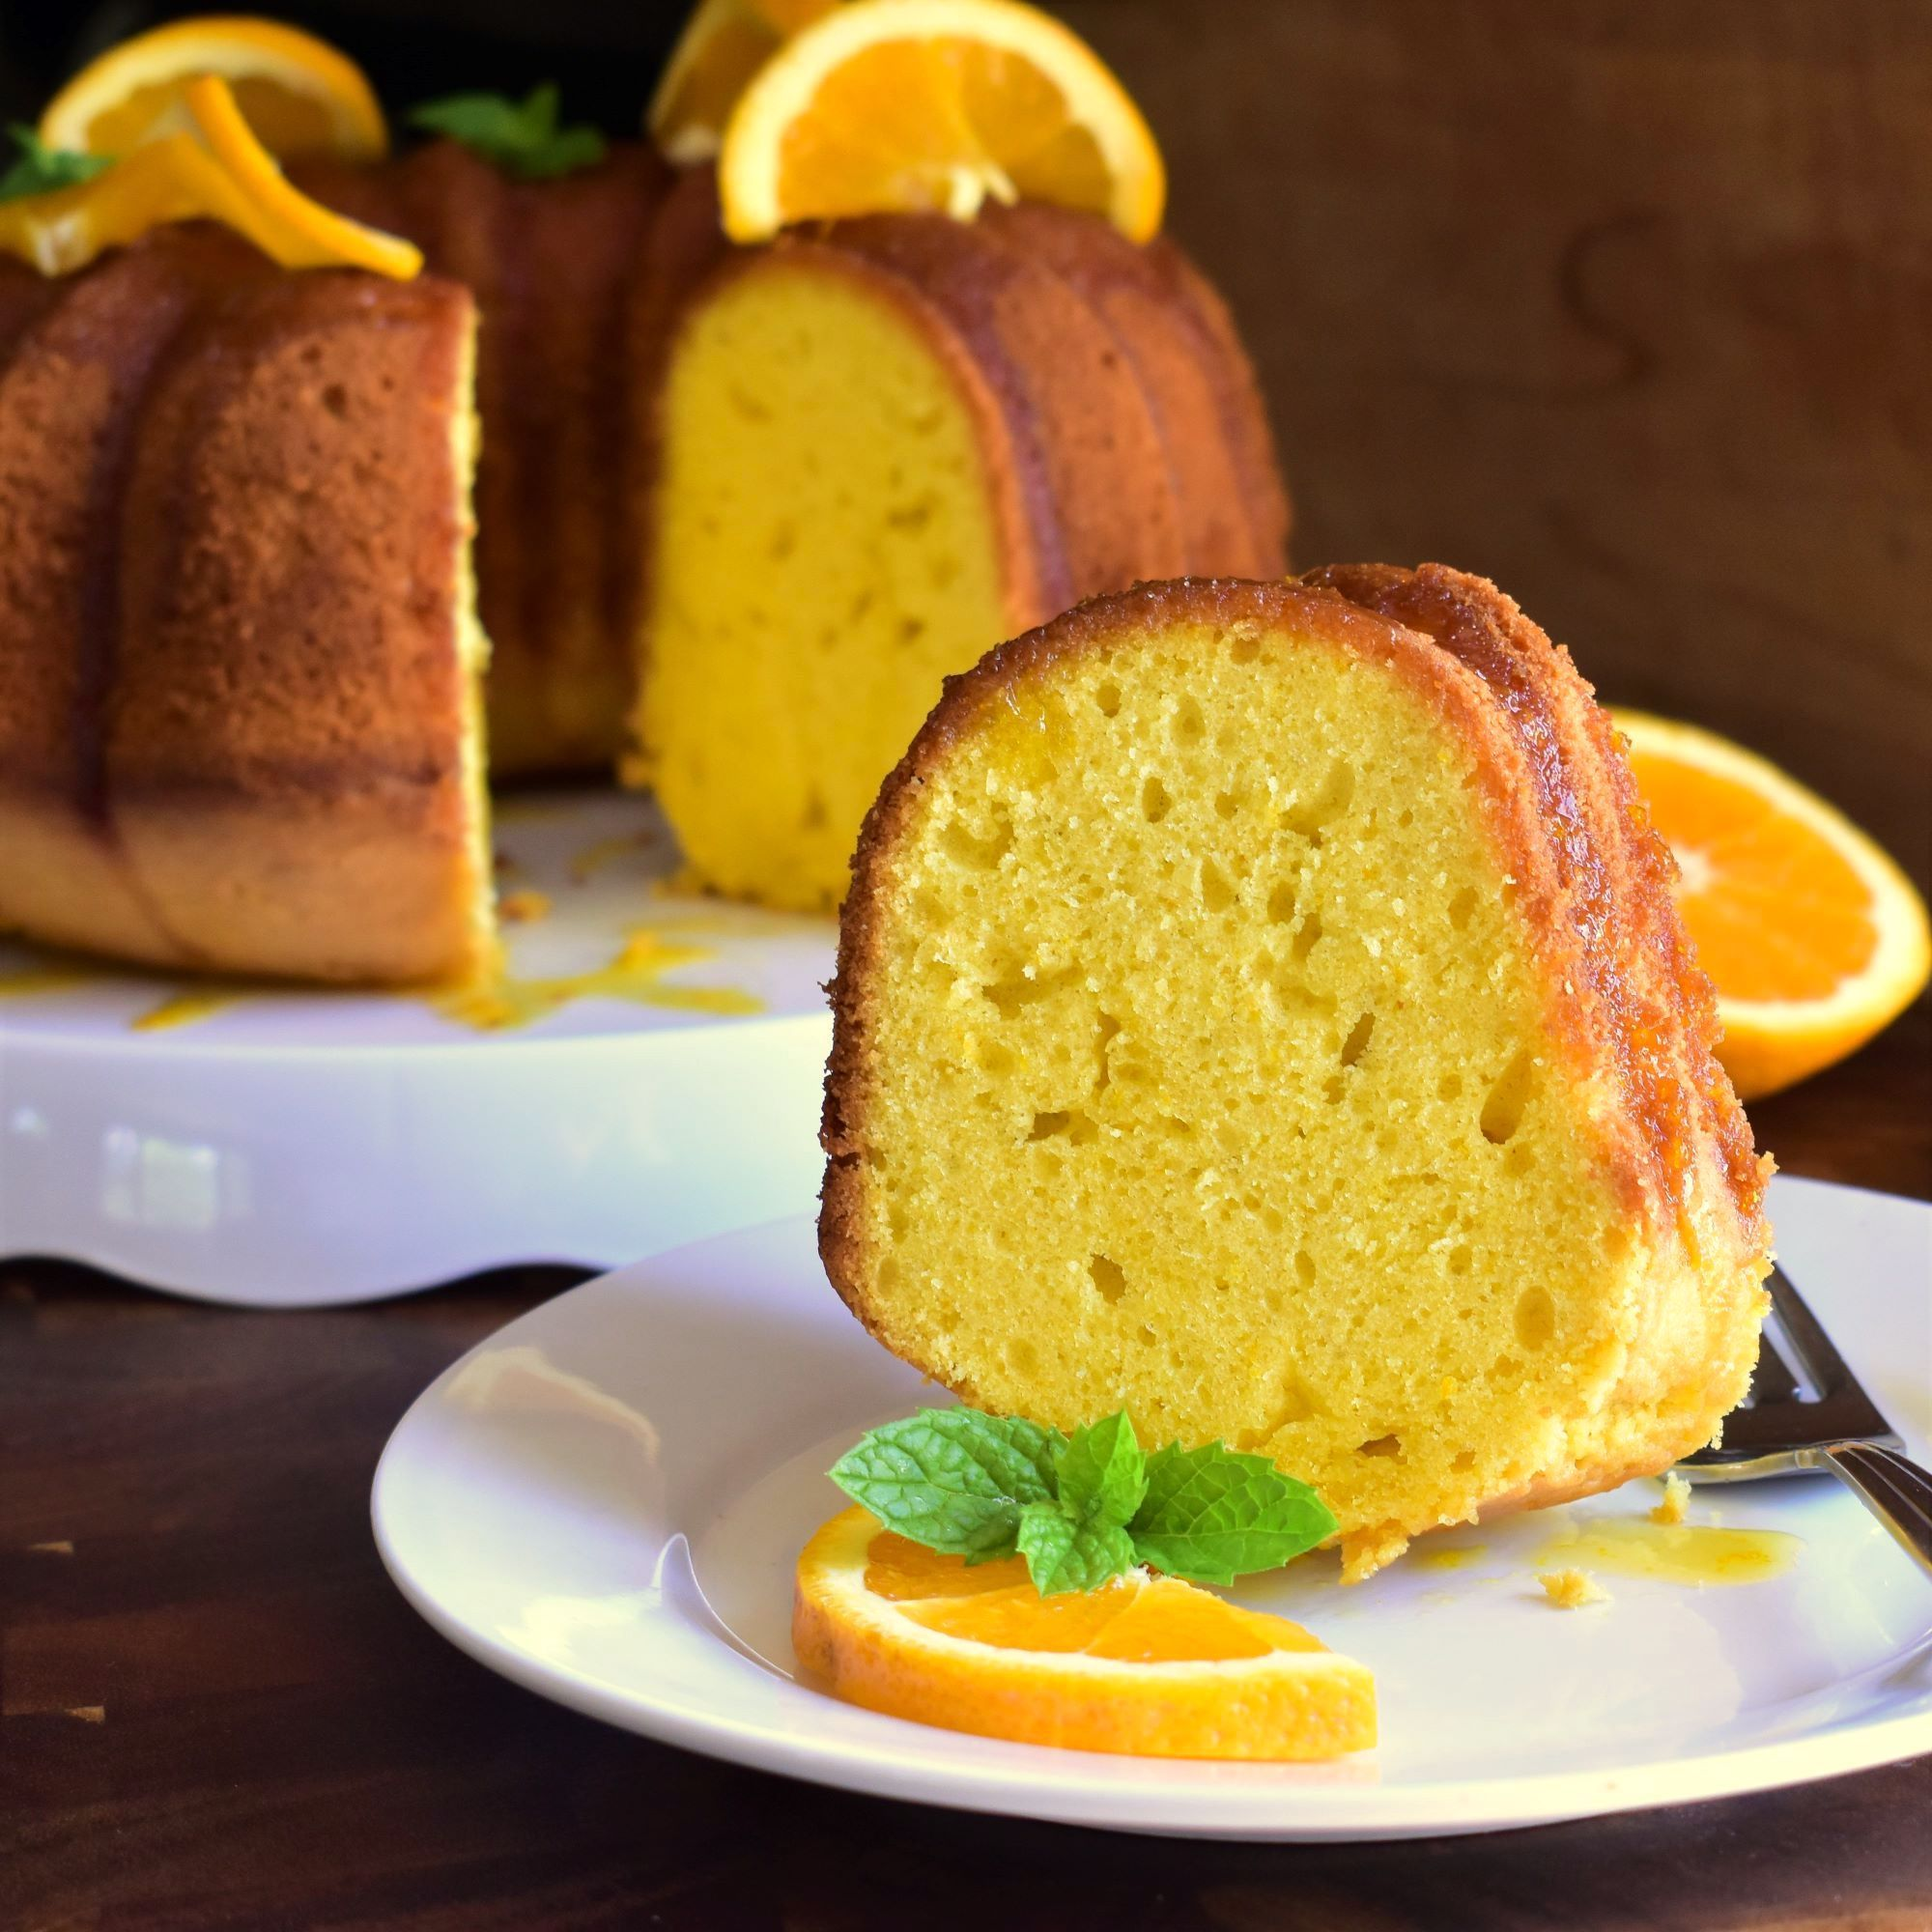 orange pound cake topped with orange slices on white plates